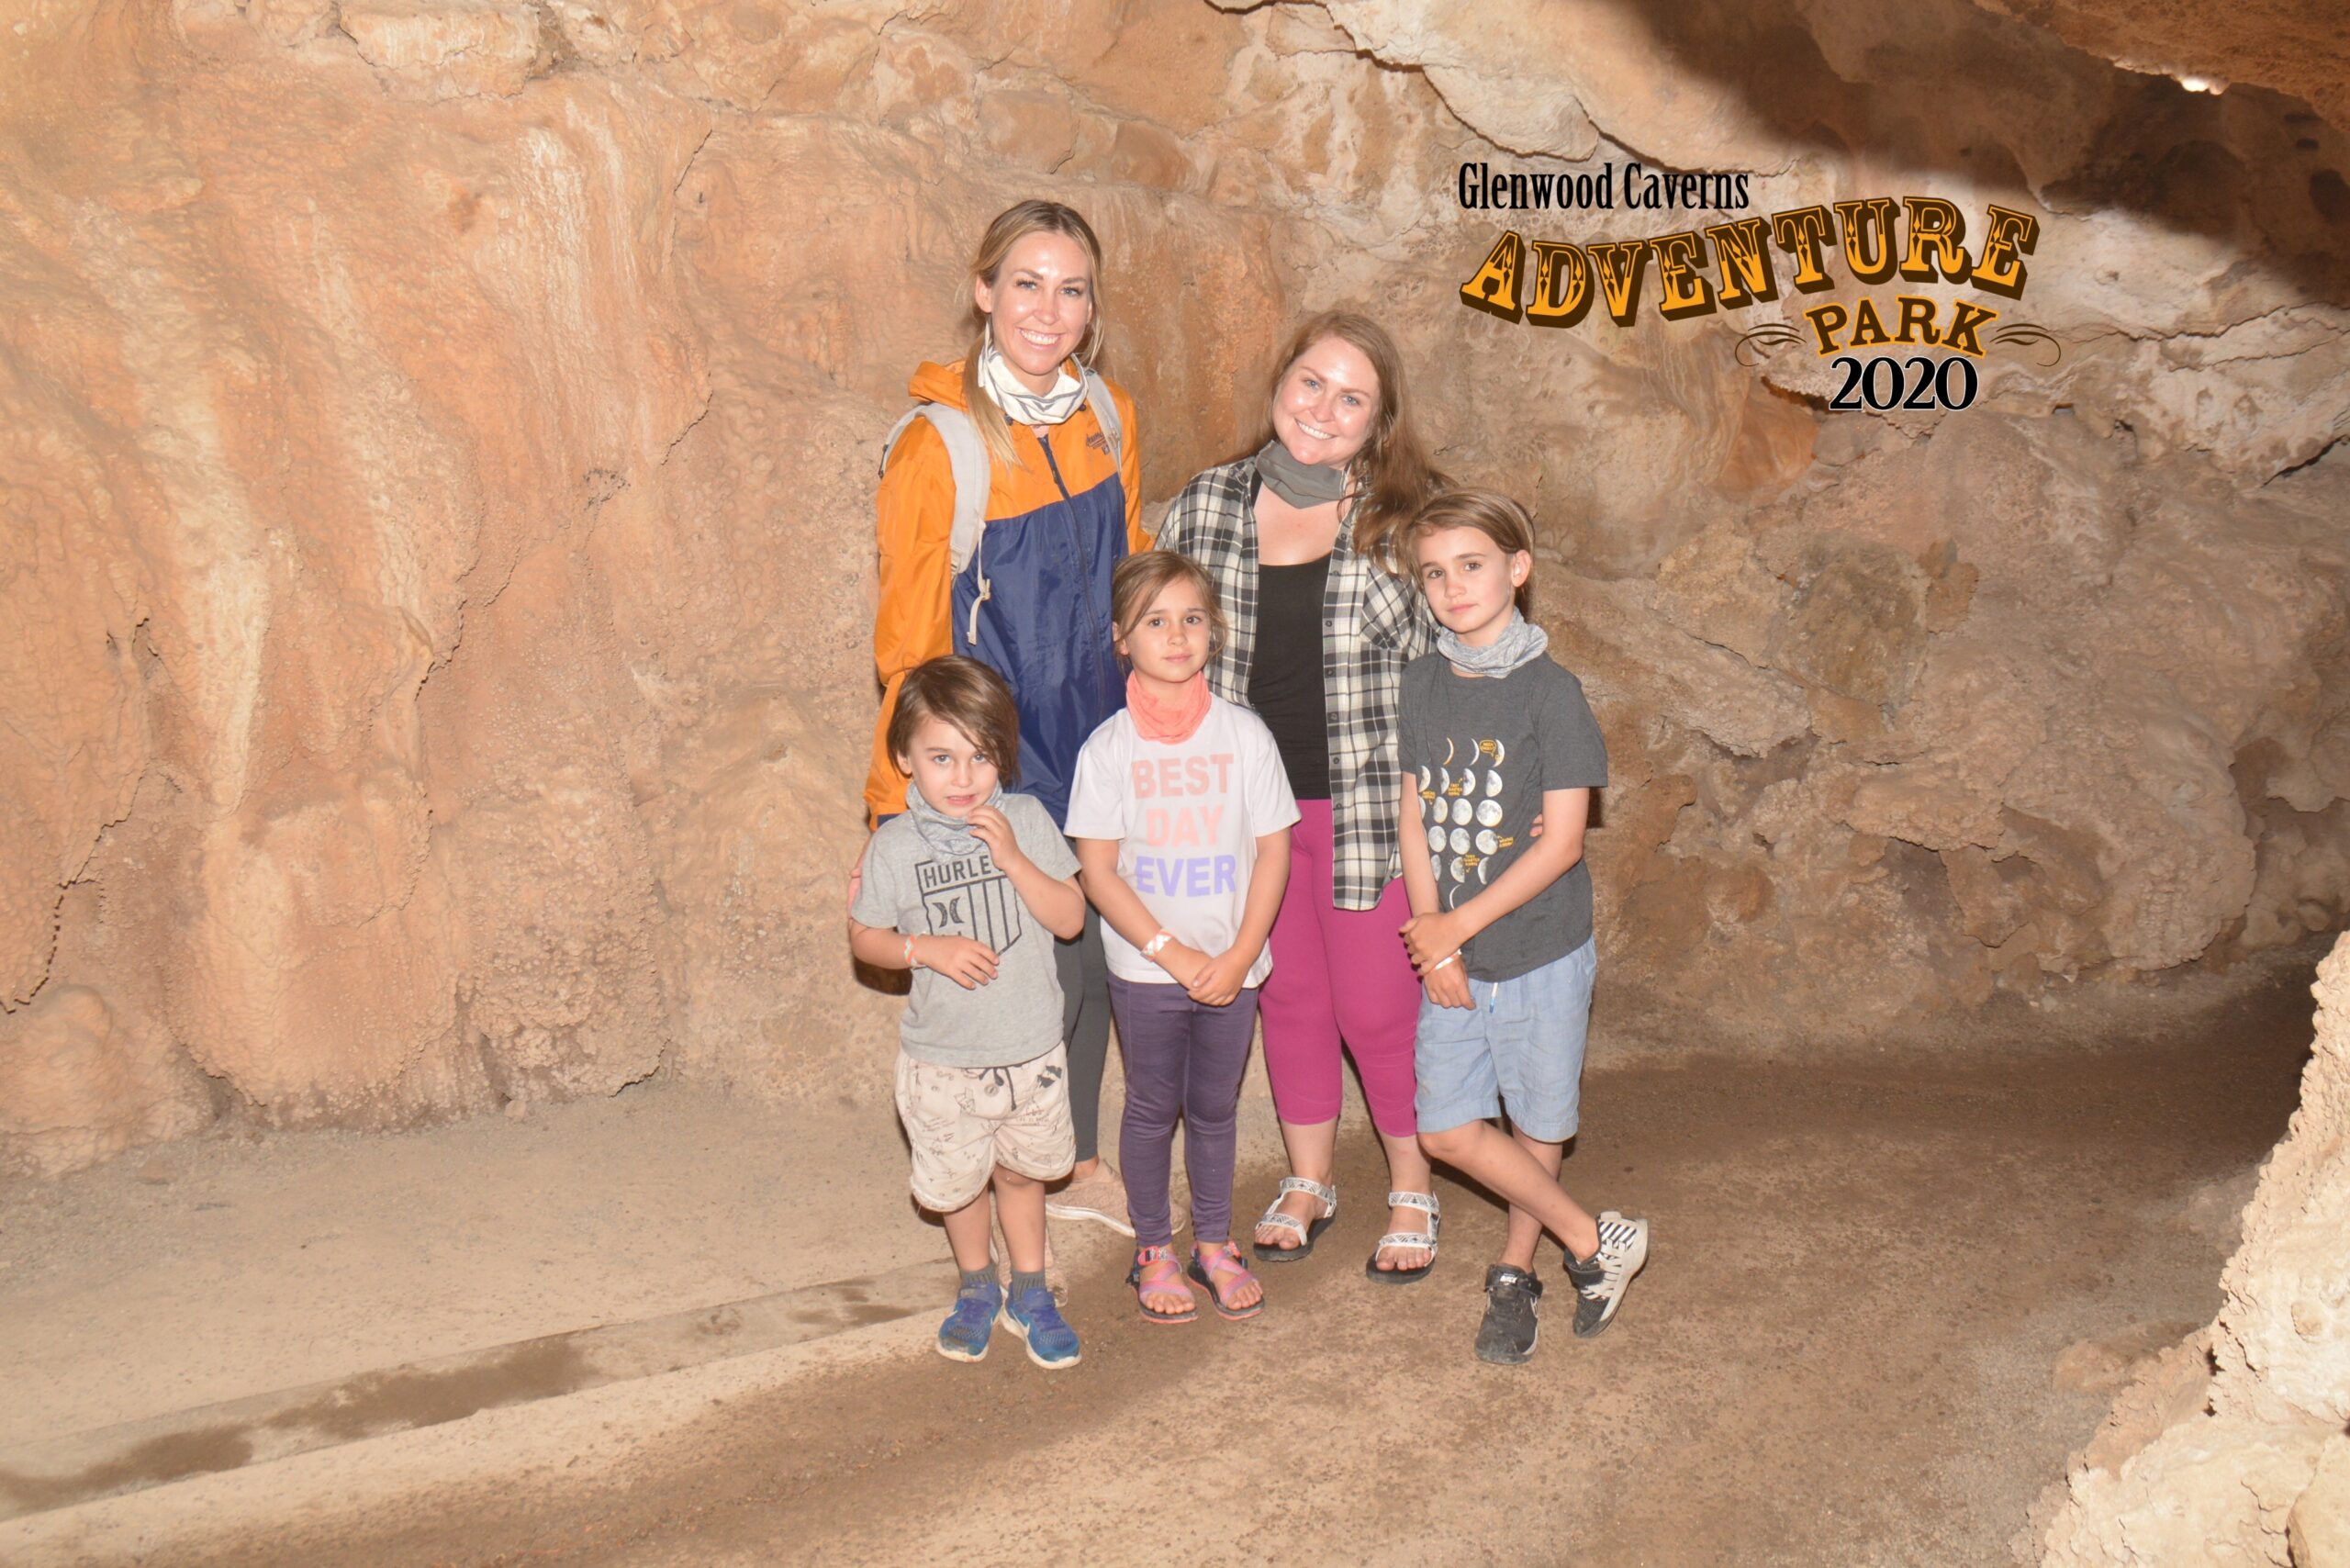 my sis and I and the kids doing the fairy tour at Glenwood Caverns Adventure Park. #cavetour #familytravel